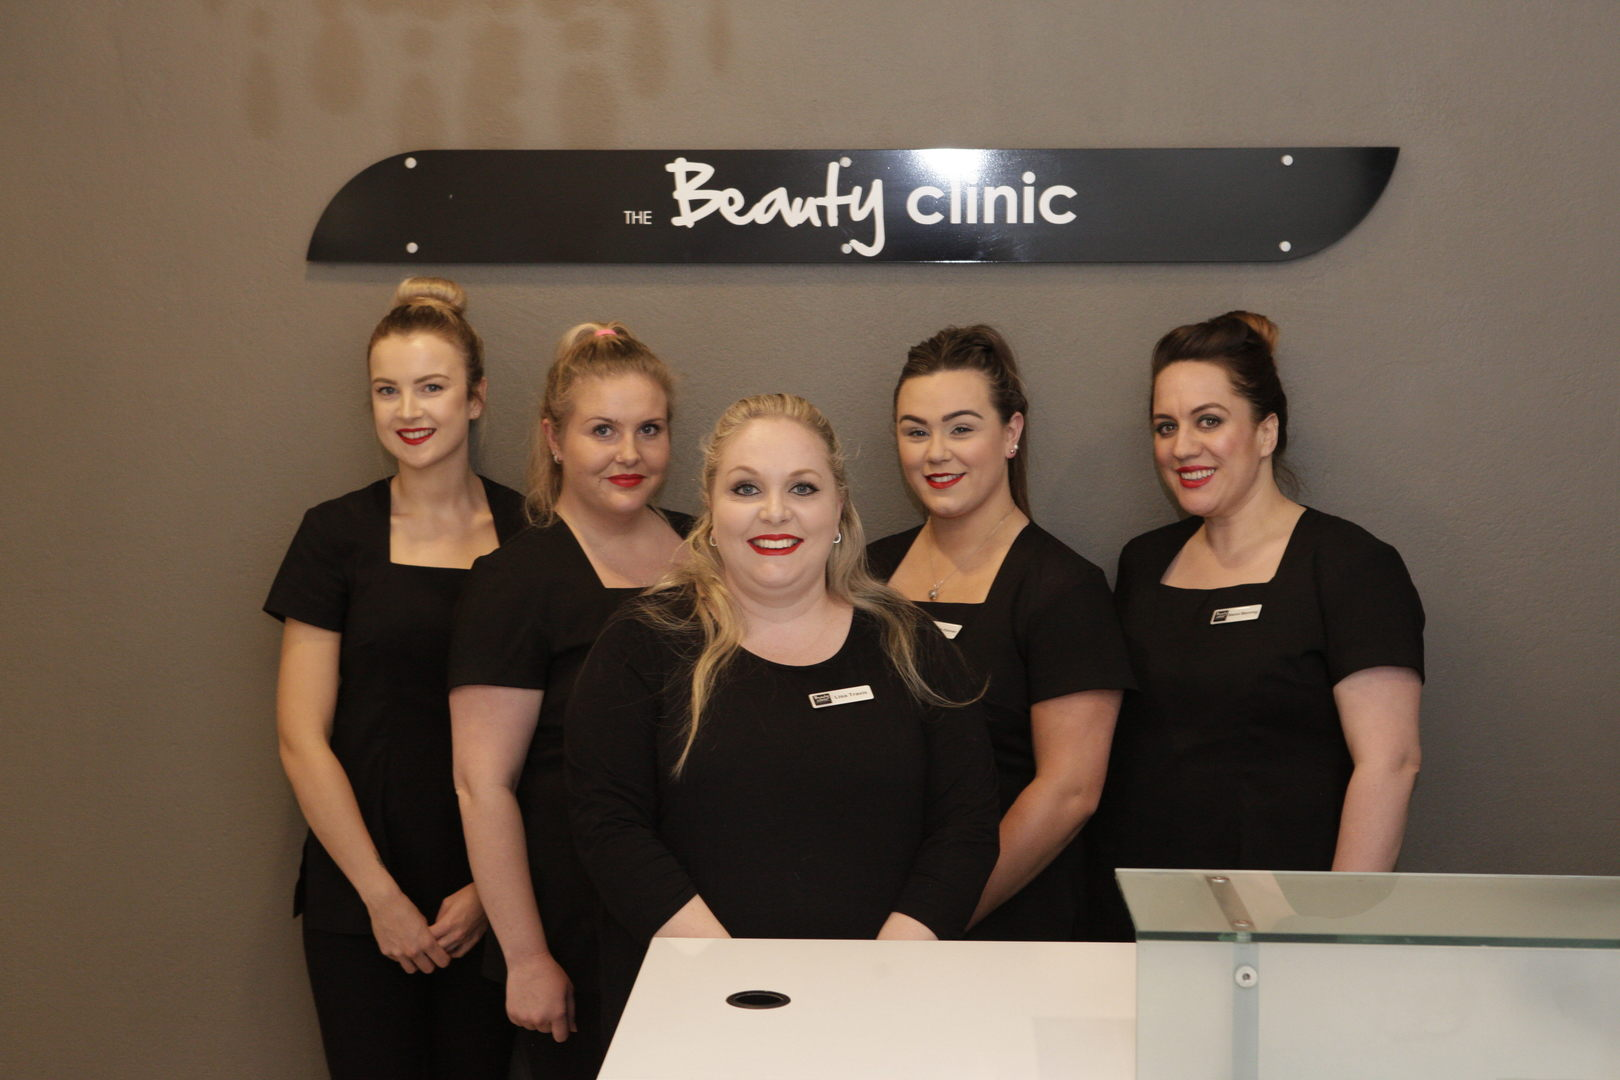 The Beauty Clinic Team - Teri, Nicole, Lisa Travis, Mikayla, Naomi